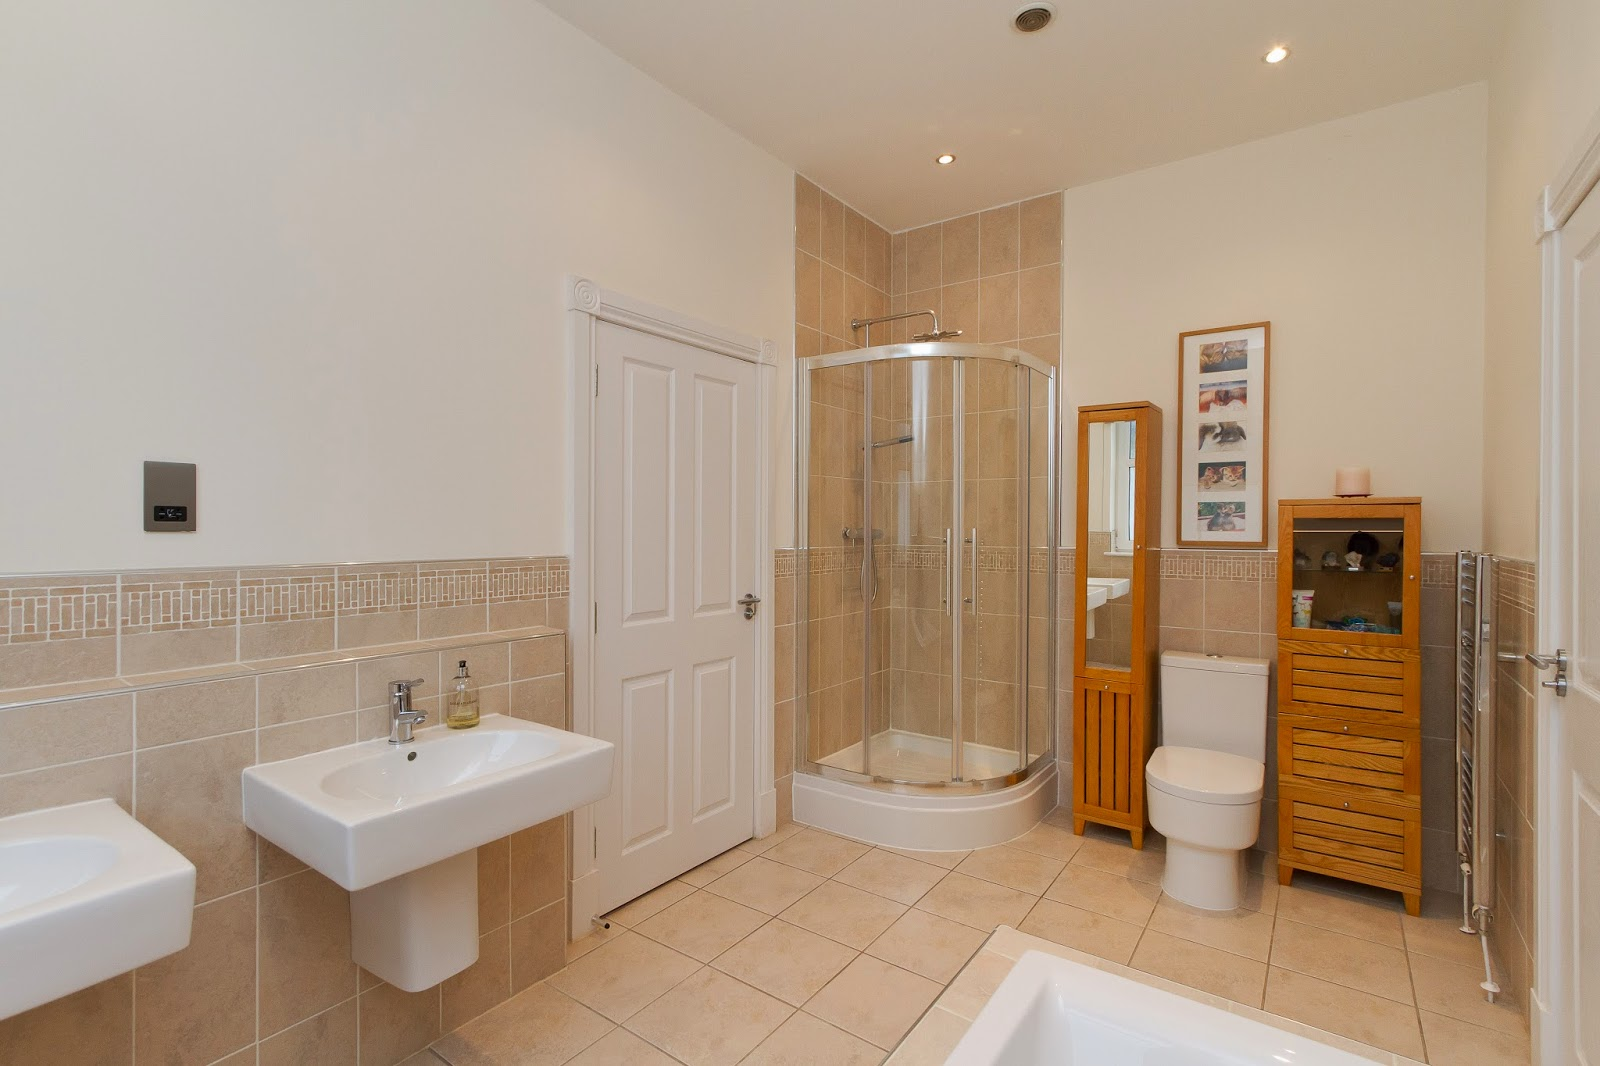 Ayrshire scotland business news ckd galbraith offer for sale a substantial family home located Master bedroom ensuite and dressing room